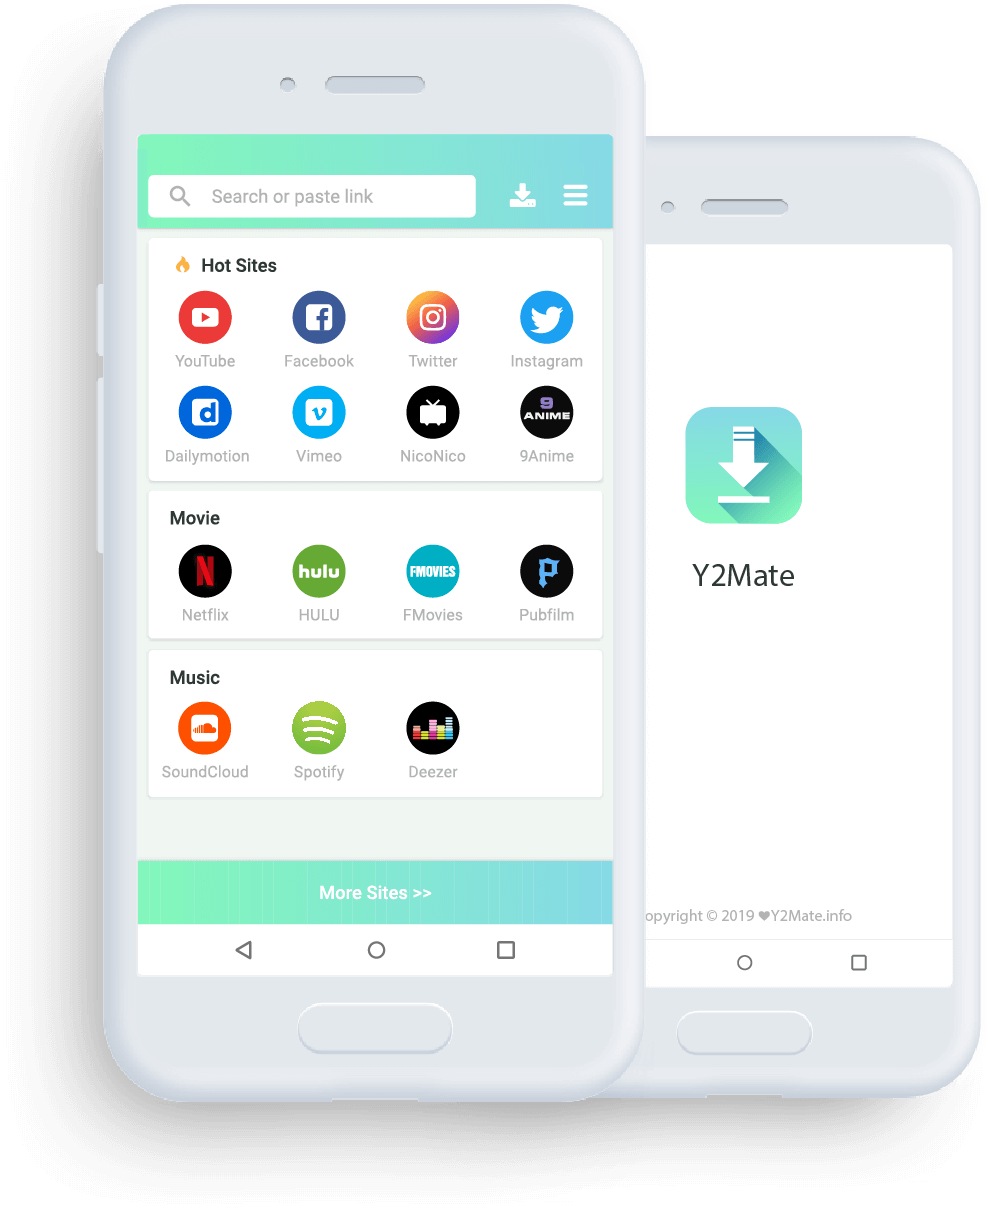 [Y2Mate] Free YouTube Downloader for PC and Android 2020